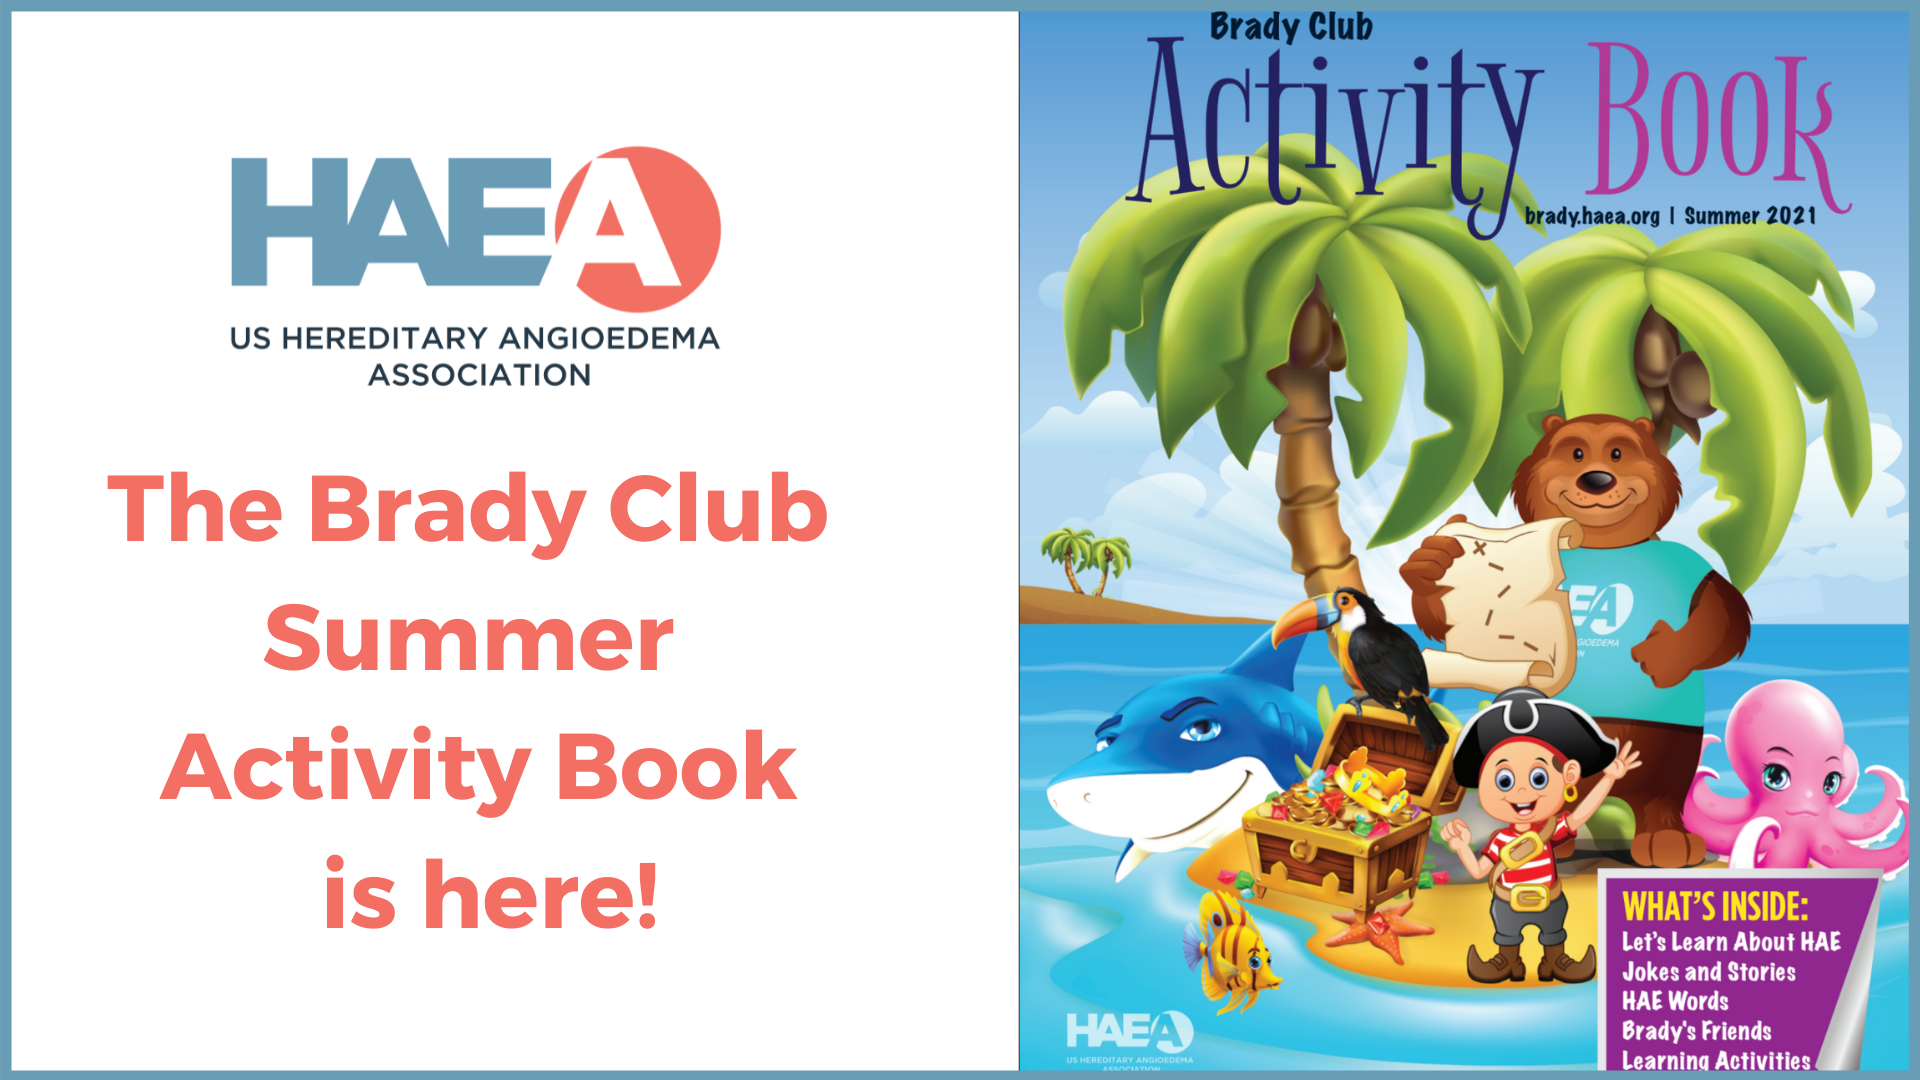 The Brady Club Summer Activity Book is HERE!